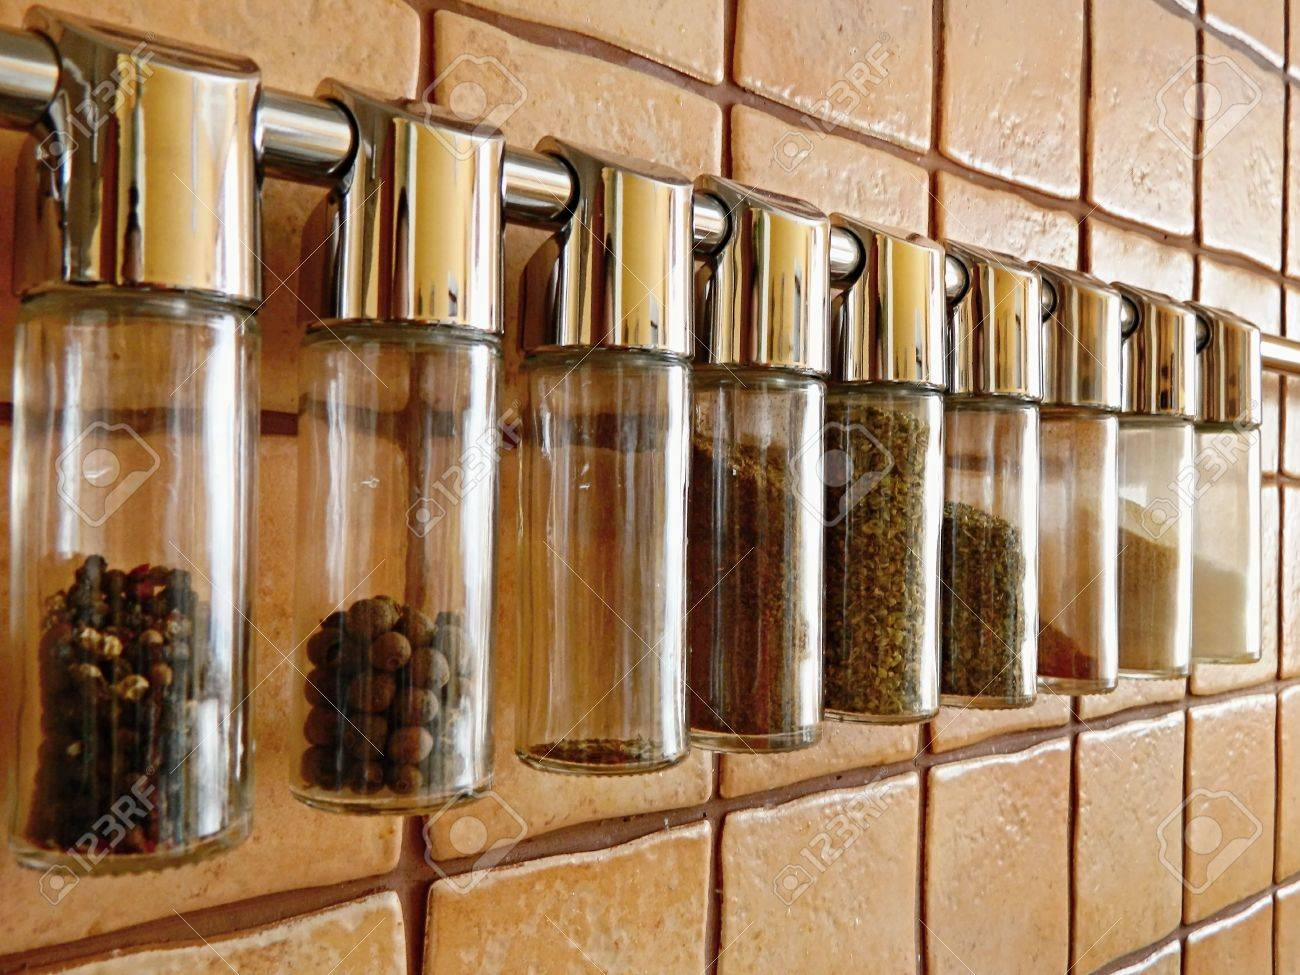 Glass spice rack hanging on stainless rod - 18572664